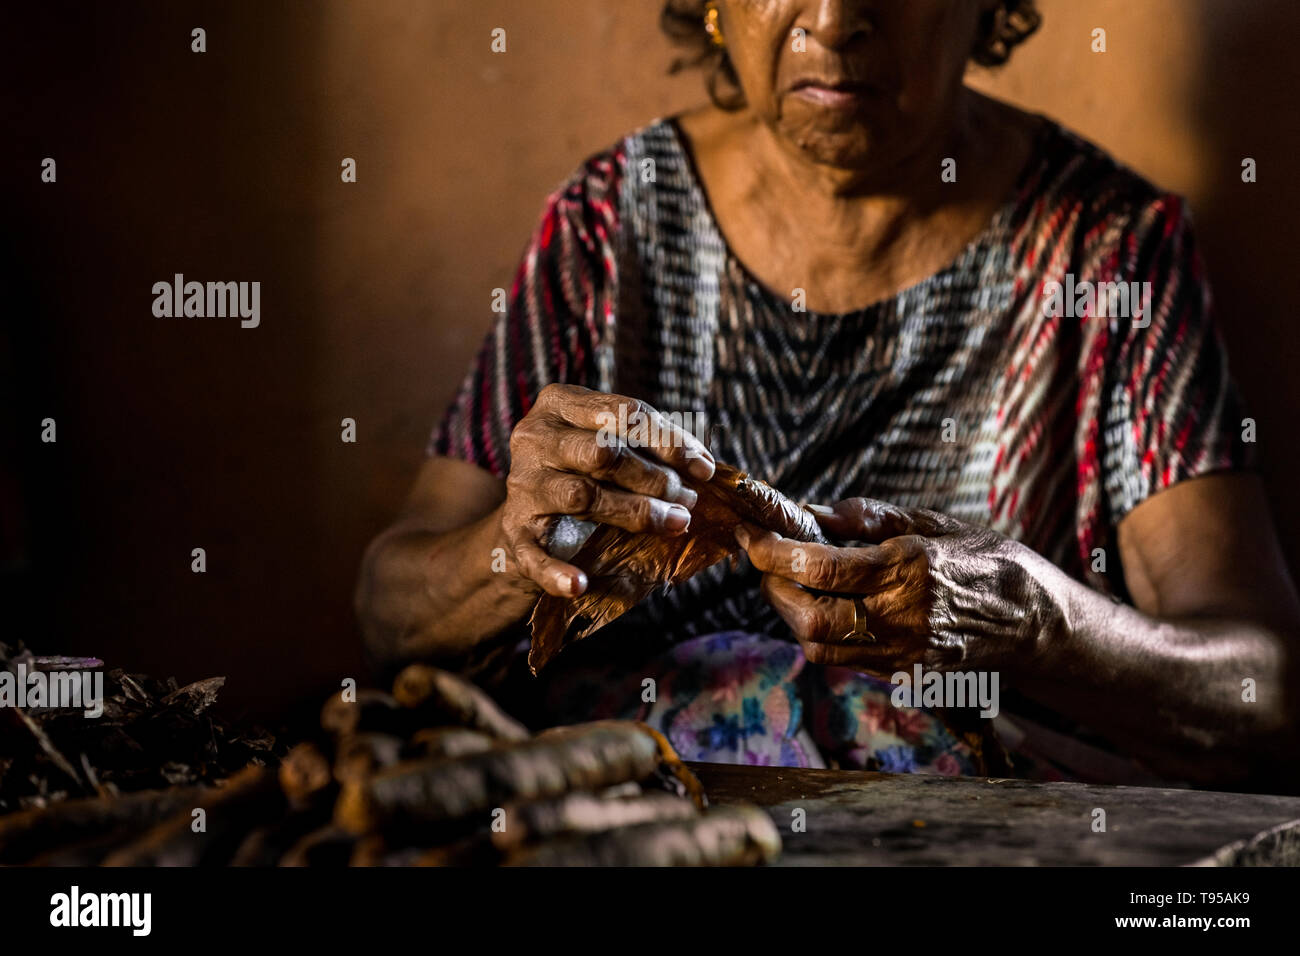 Laura Peña, a 67-years-old Salvadoran woman, rolls tobacco leaves into a handmade cigar in her house in Suchitoto, El Salvador. - Stock Image